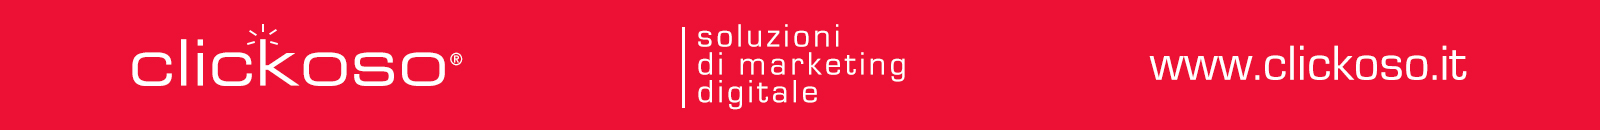 Clickoso - Soluzioni di marketing digitale